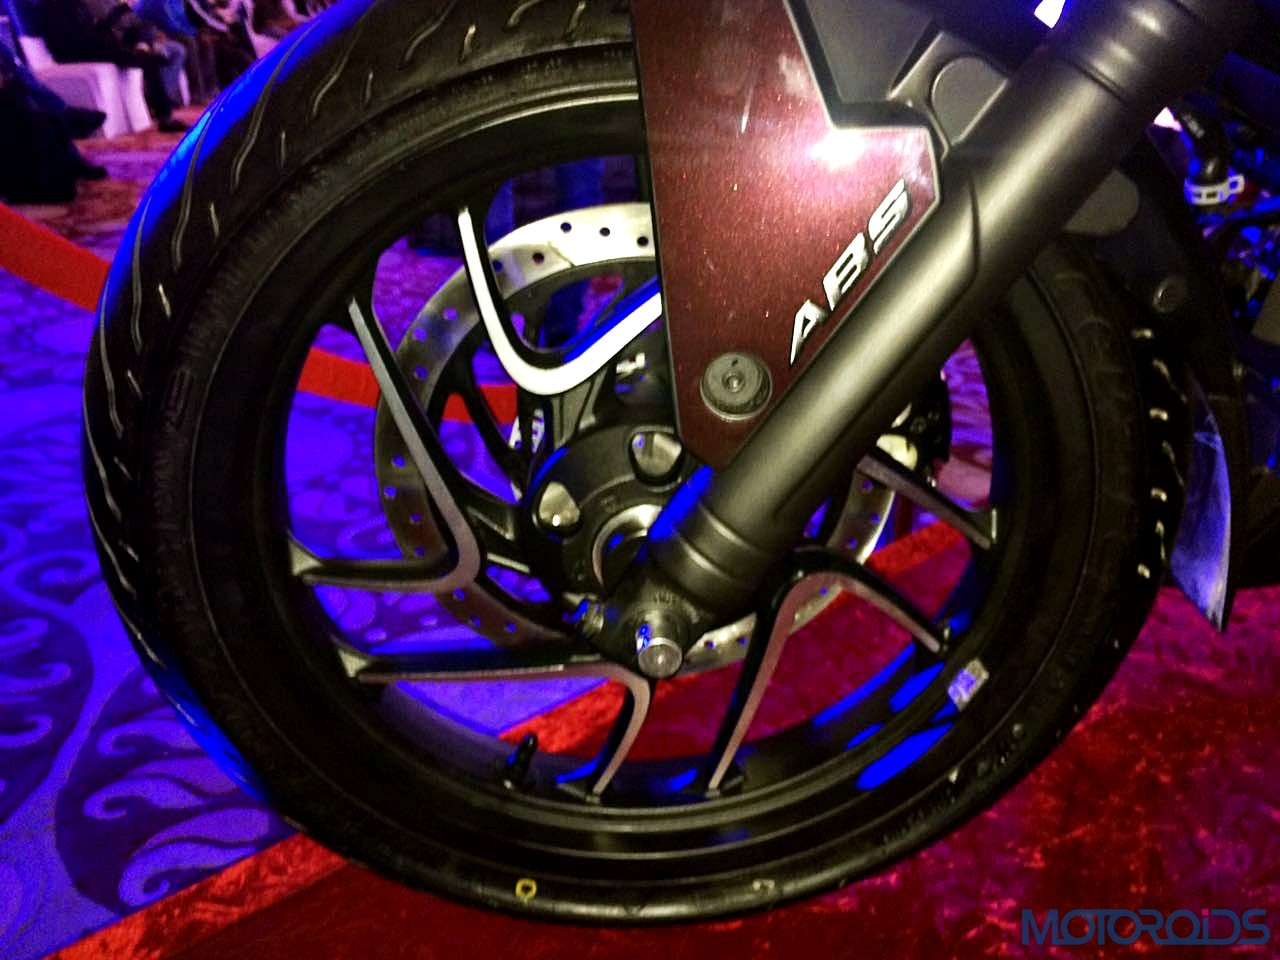 bajaj-Dominar-India-Launch-Images-9